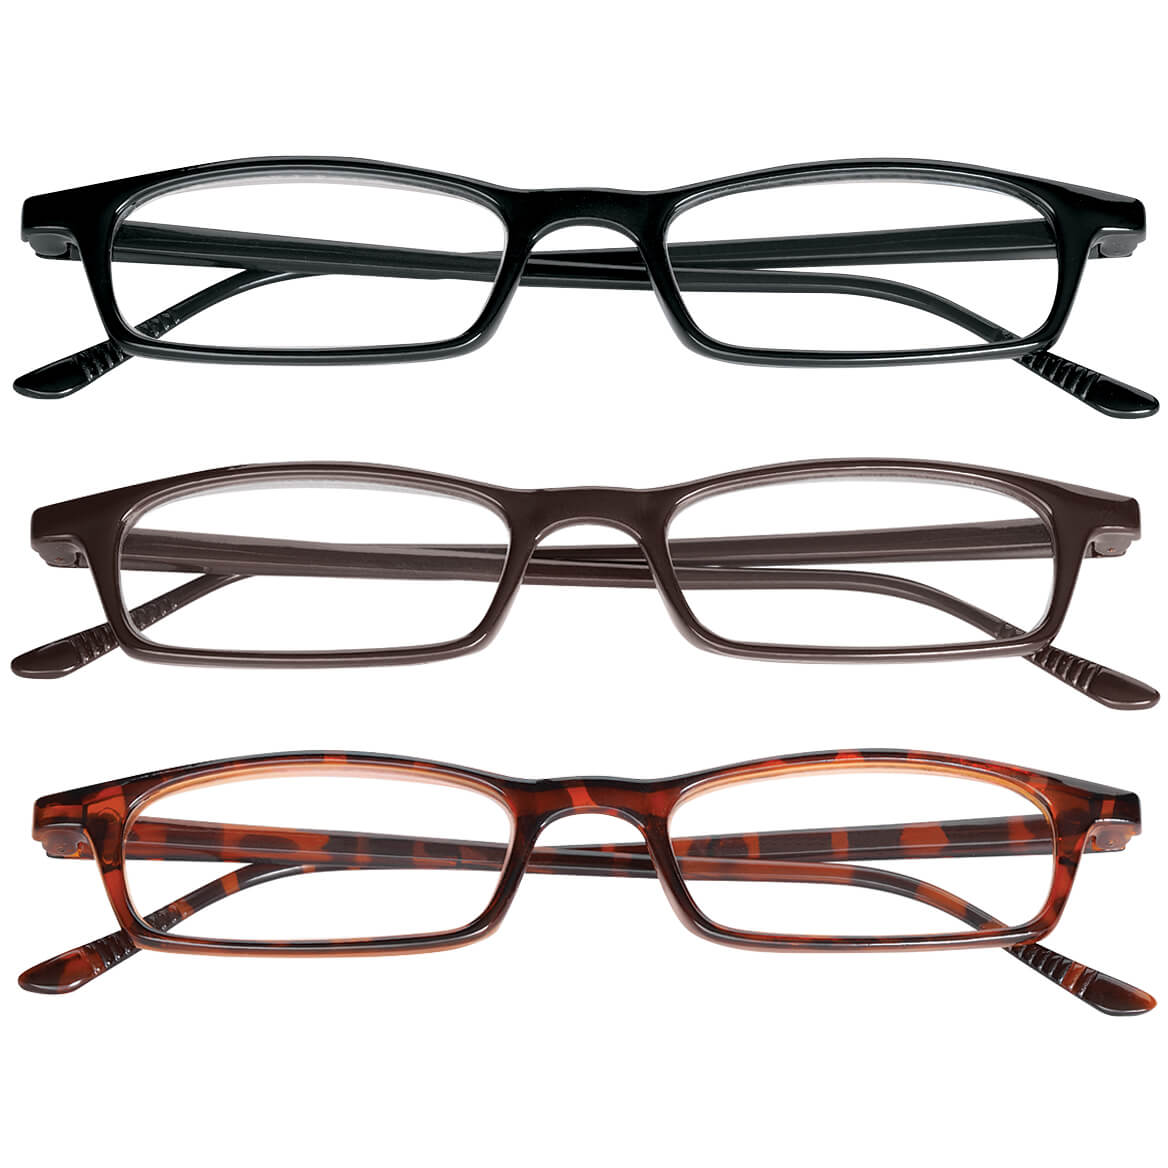 Magnif-I Reading Glasses +3.00 by That Company Called If 4HF3J